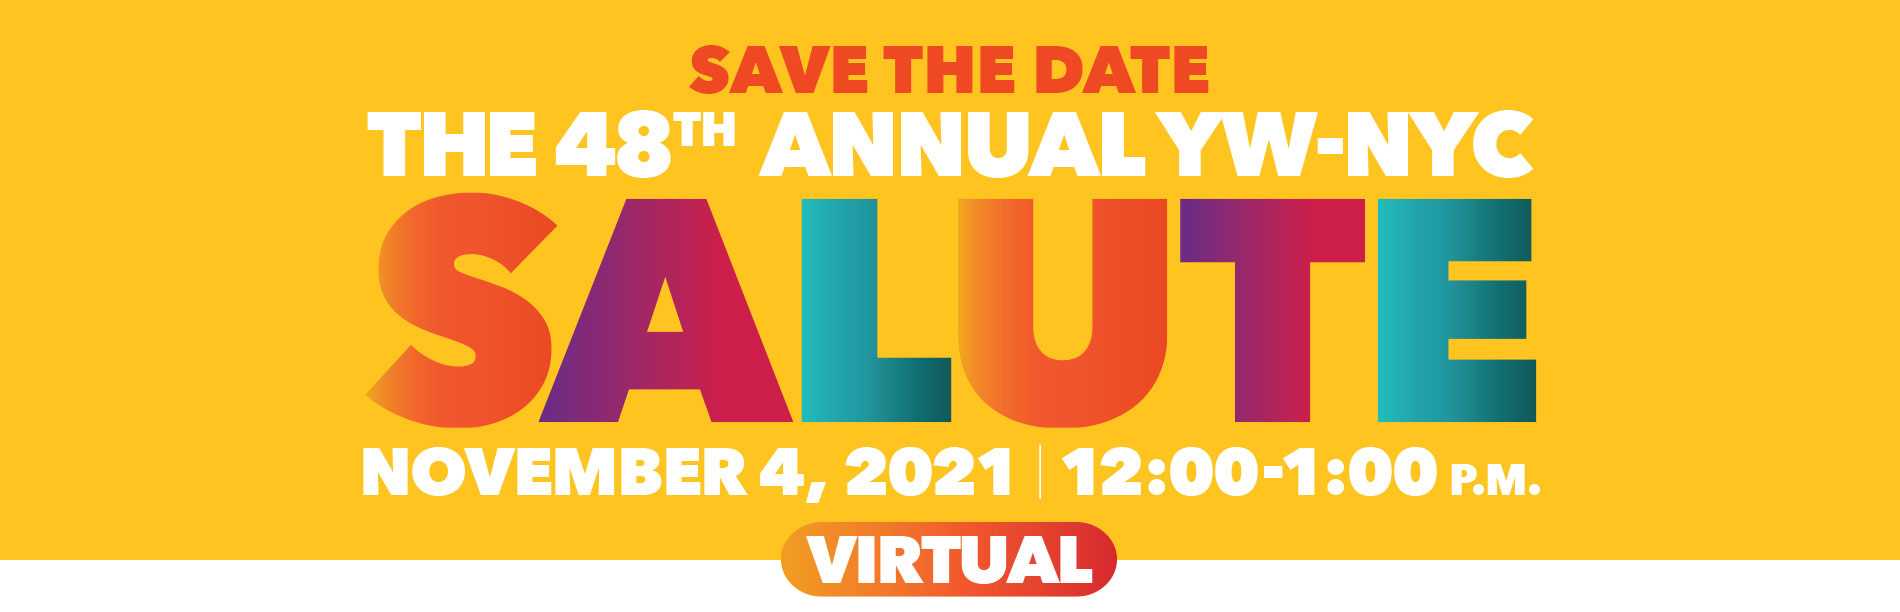 48th Annual YW-NYC Salute Save The Date Banner